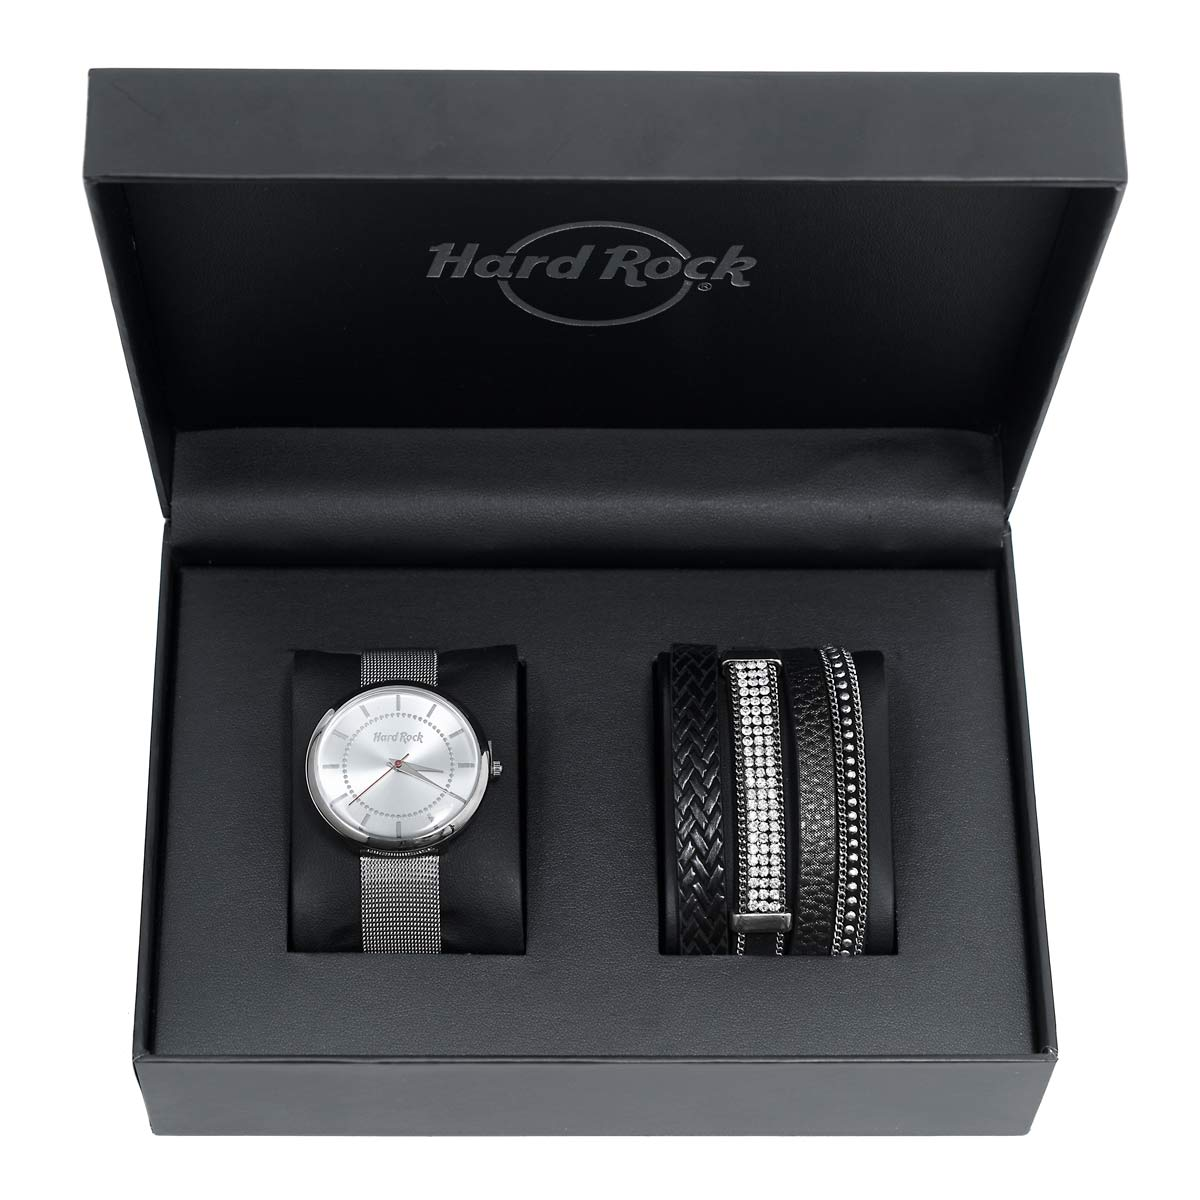 Women's Watch and Bracelet Boxed Set